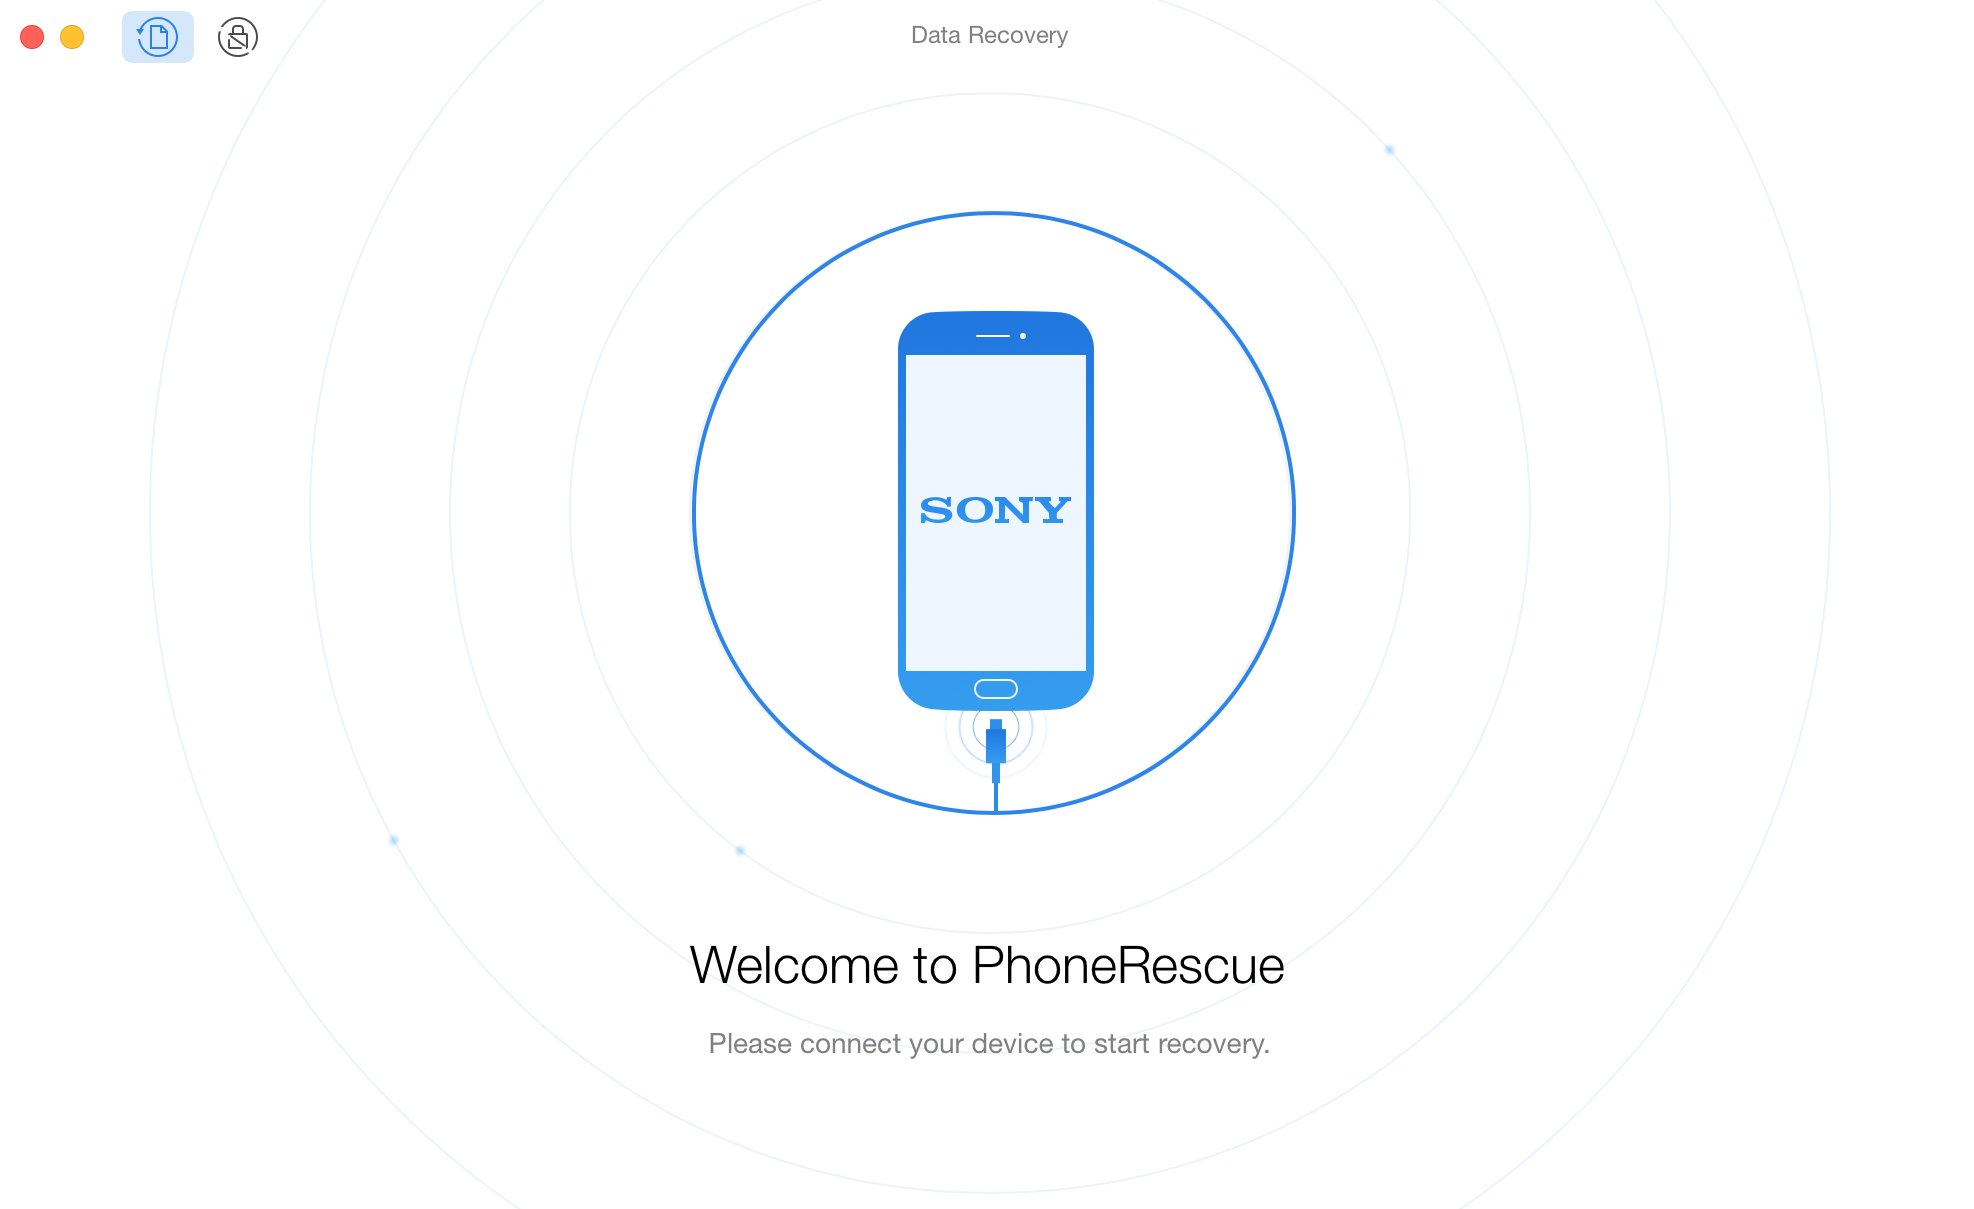 Connecting Your SONY Device